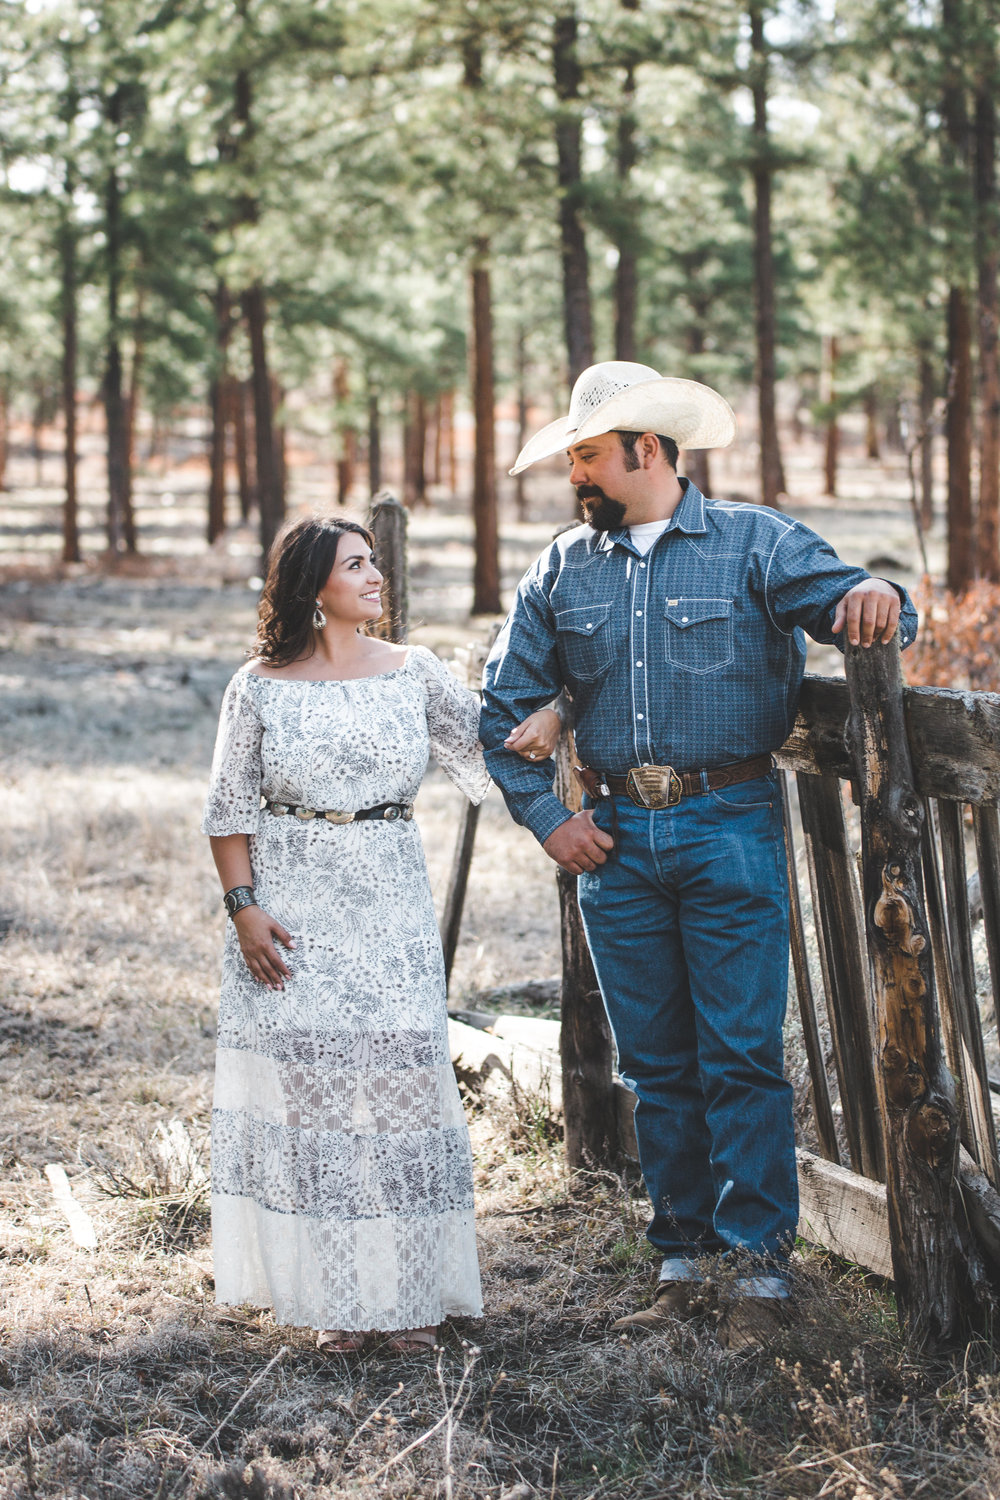 New Mexico Ranch Engagement Photography, - Cowboy, Horse, Couple, Western, Rustic